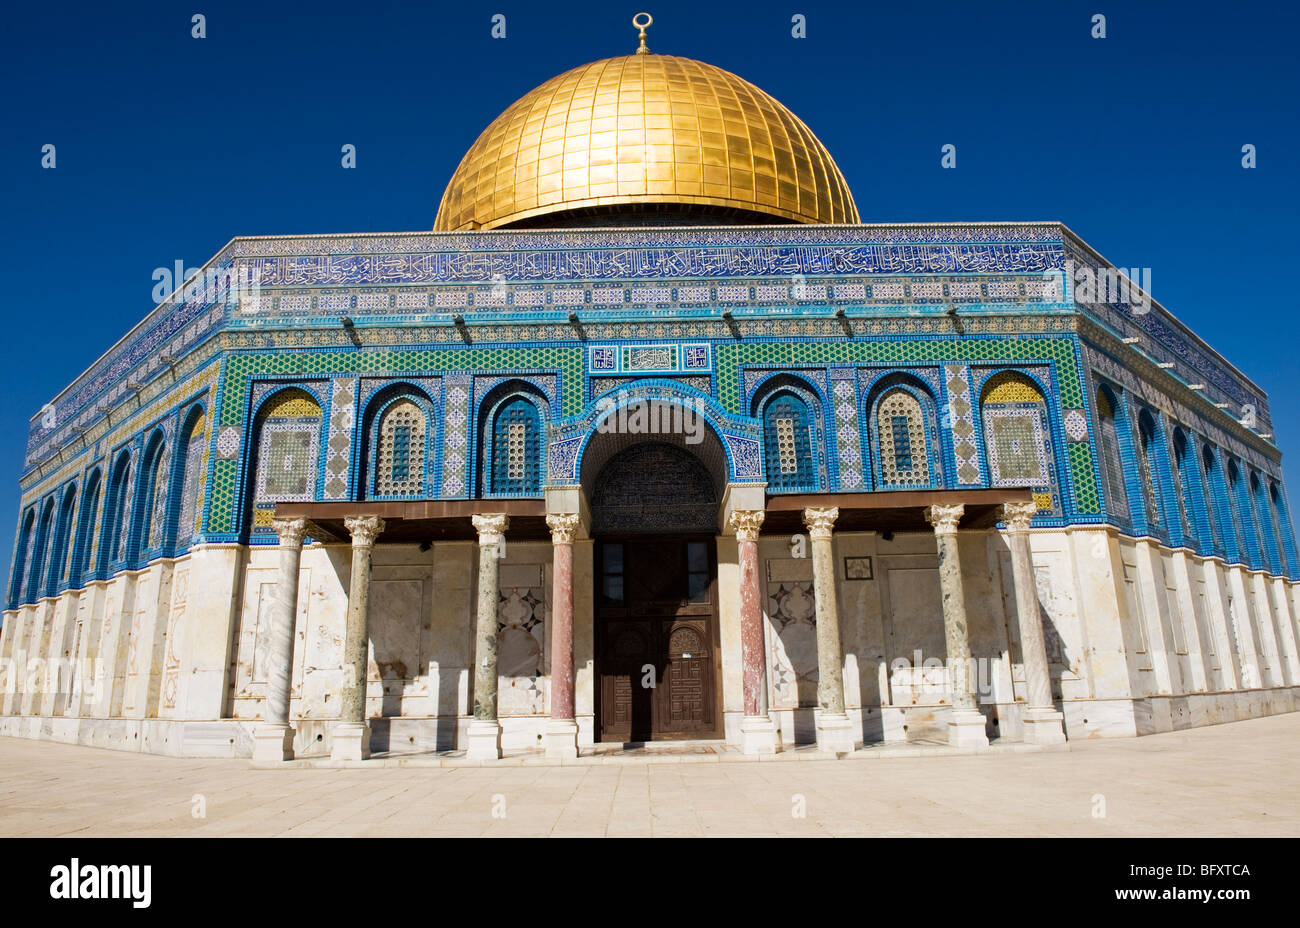 The Al-Aqsa mosque in the old city of Jerusalem. - Stock Image